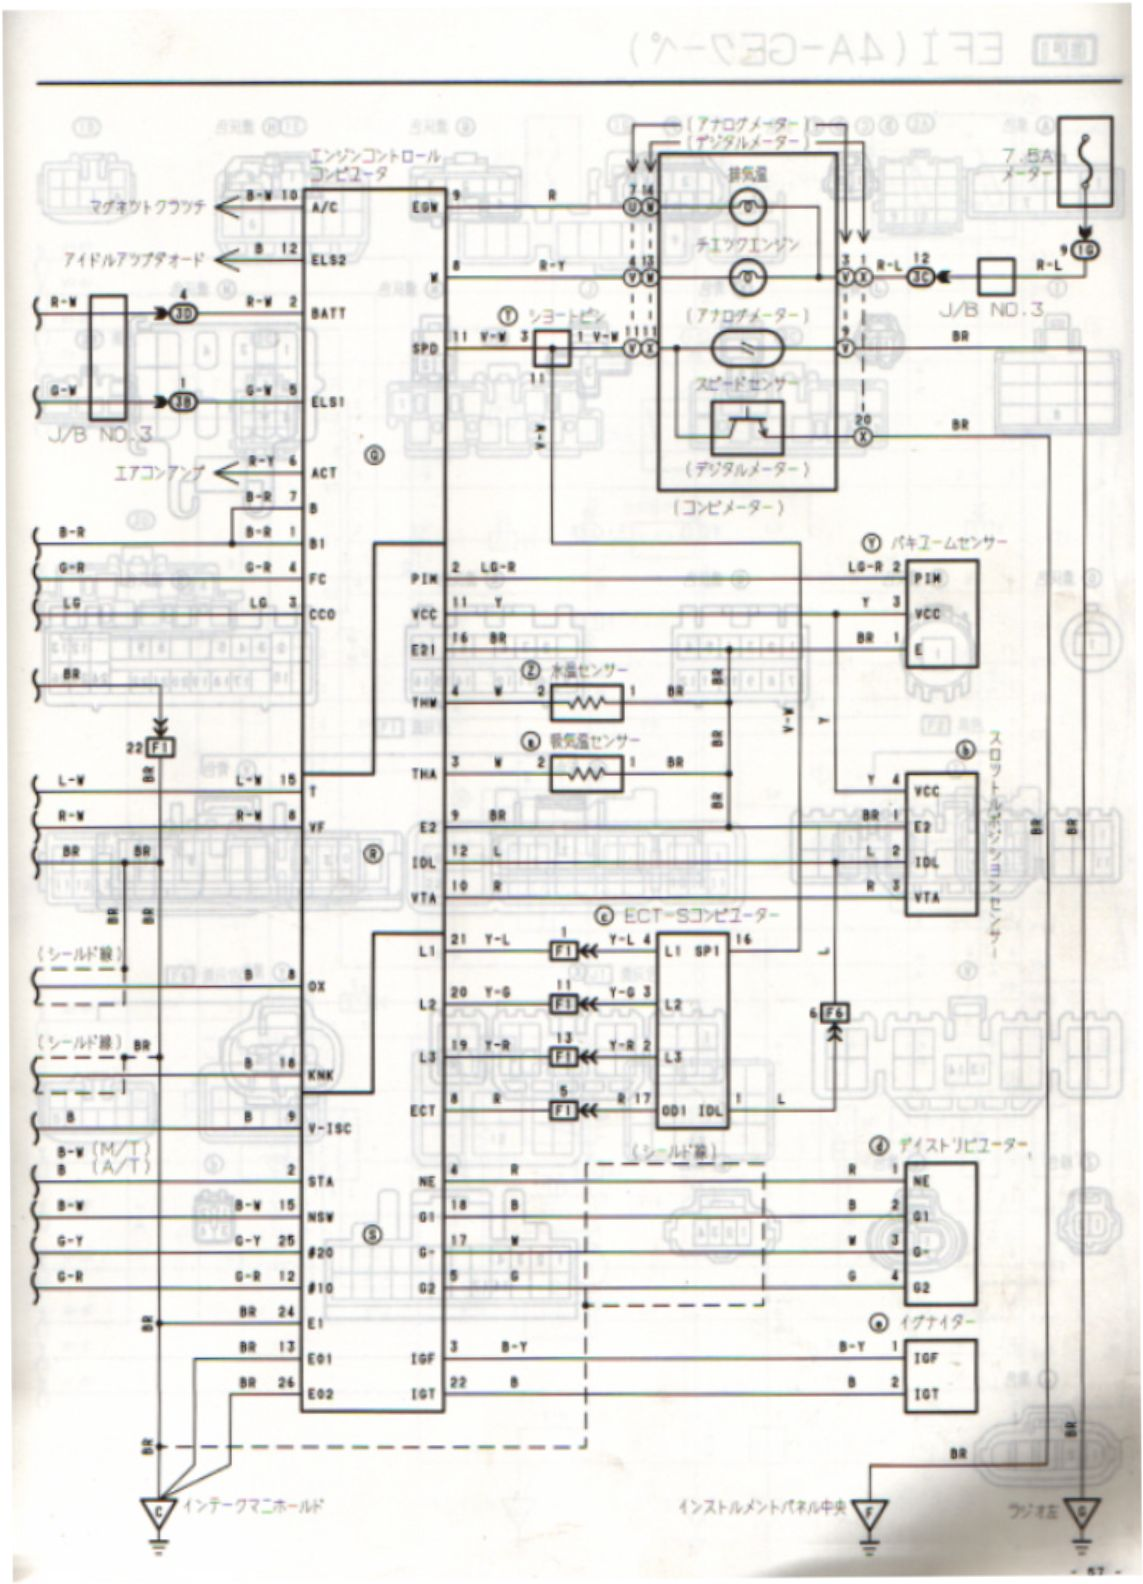 4age wiring diagram efcaviation com 4age 20v blacktop wiring diagram at fashall.co